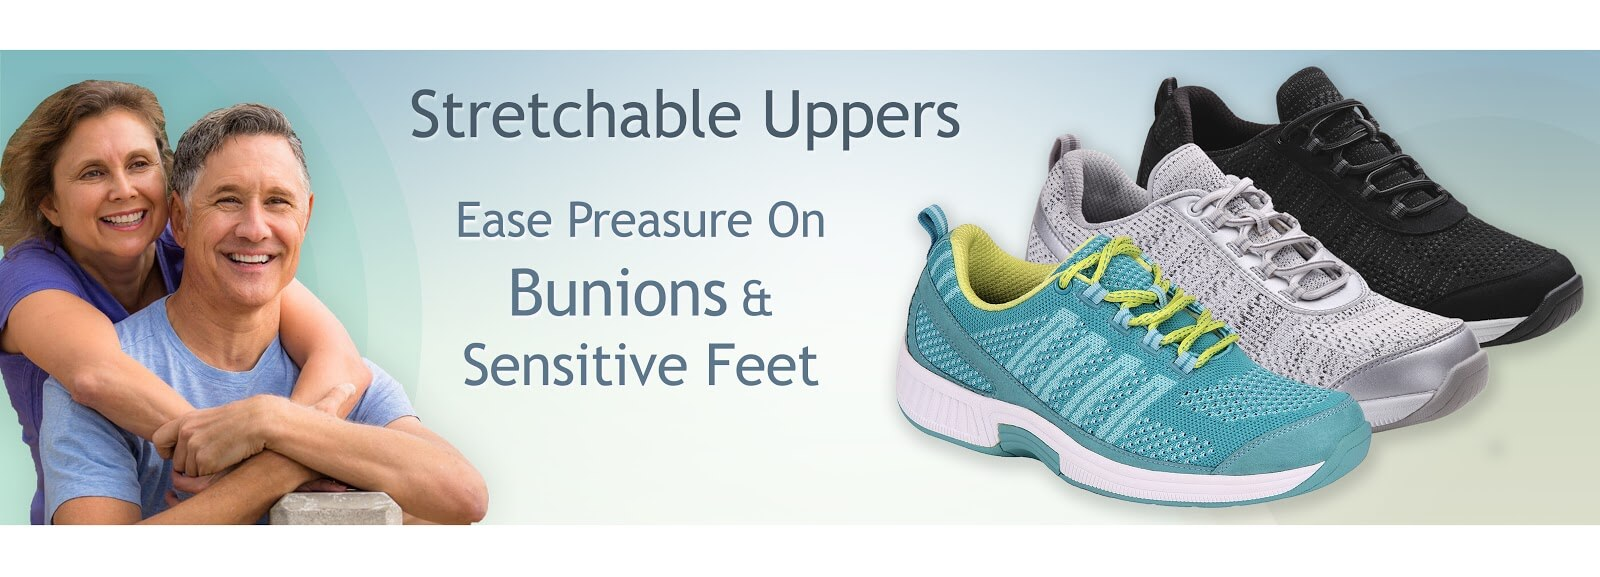 special shoes for bunions